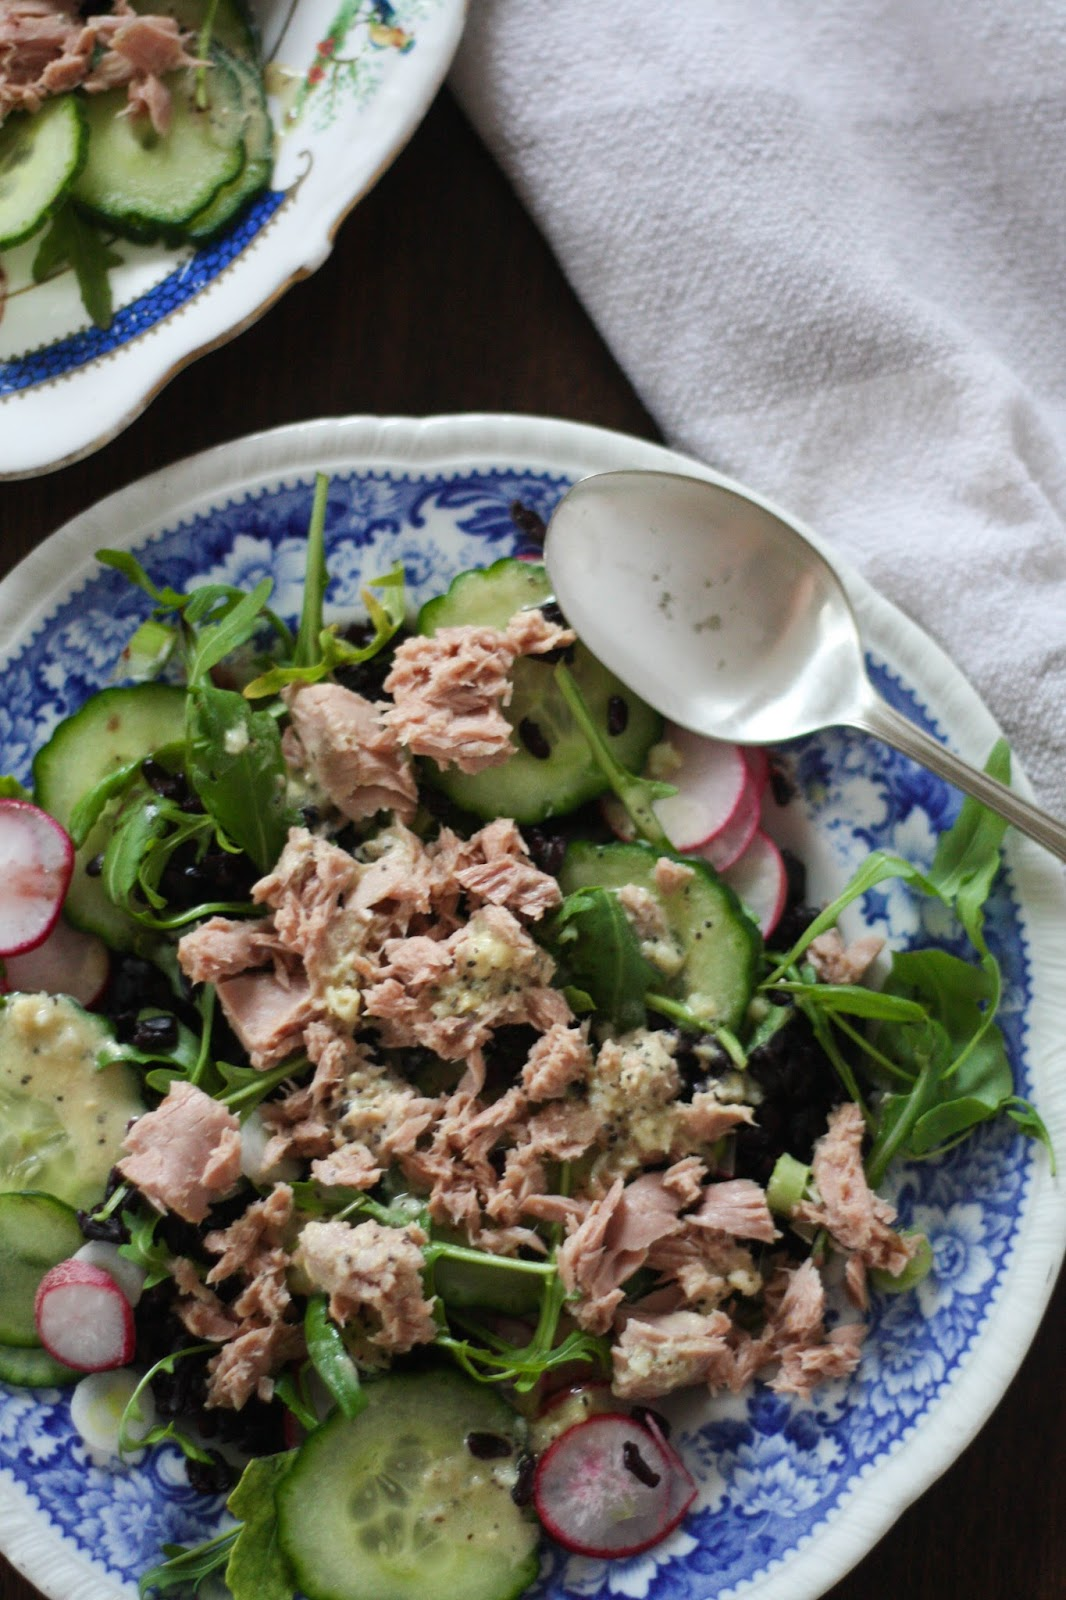 Tuna & rocket salad with mustard dressing